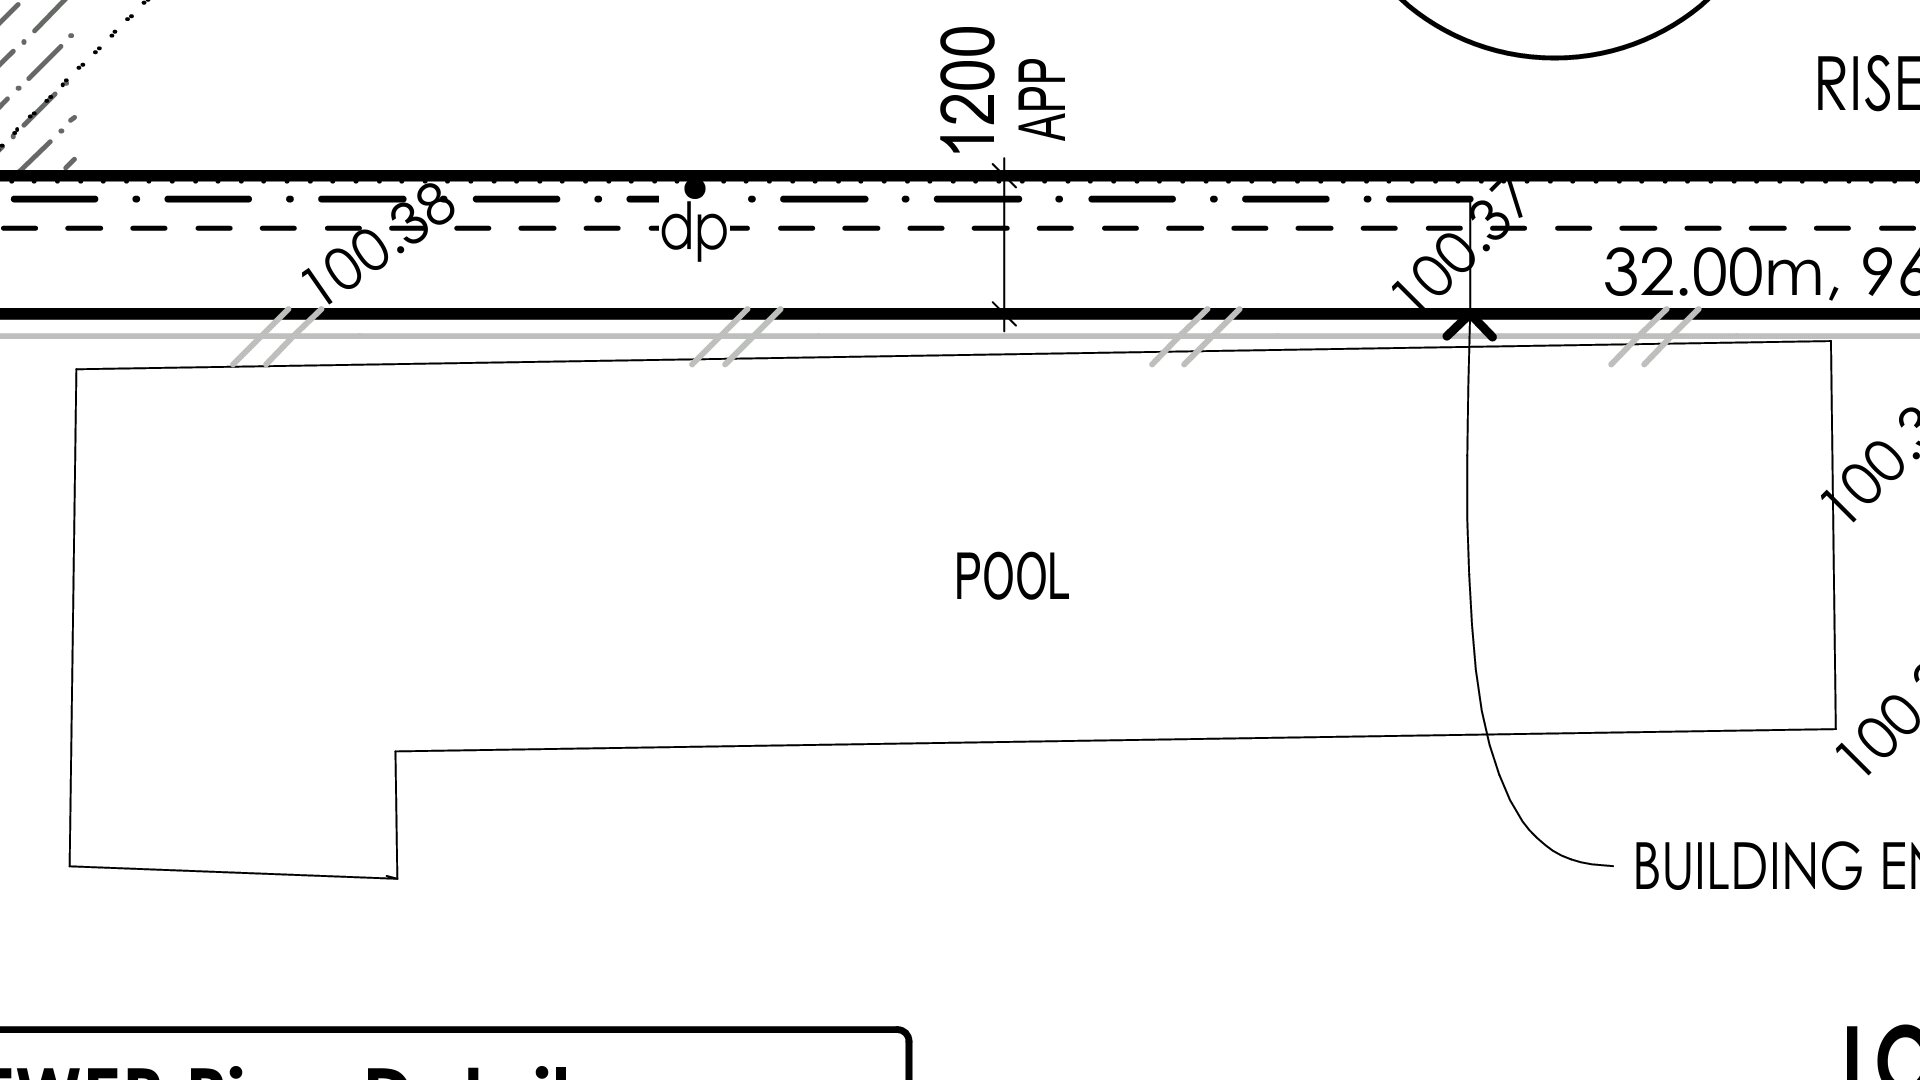 Building a new house, neighbour has a pool